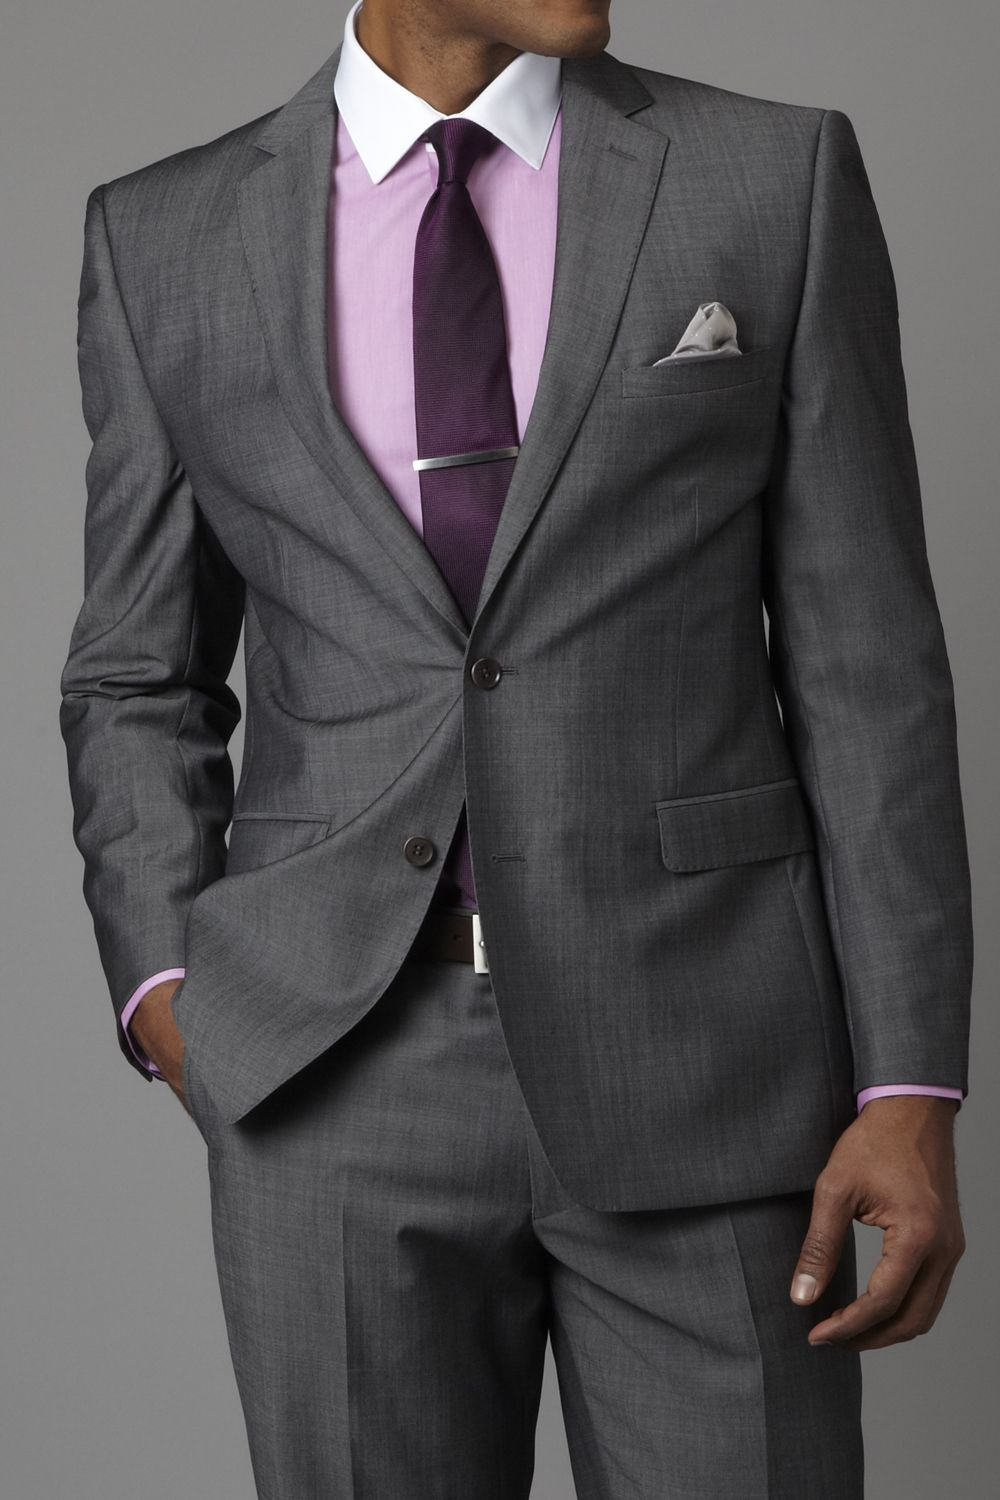 Dark grey suit with splash of purple a 6figurejobs color for Shirt and tie for charcoal suit